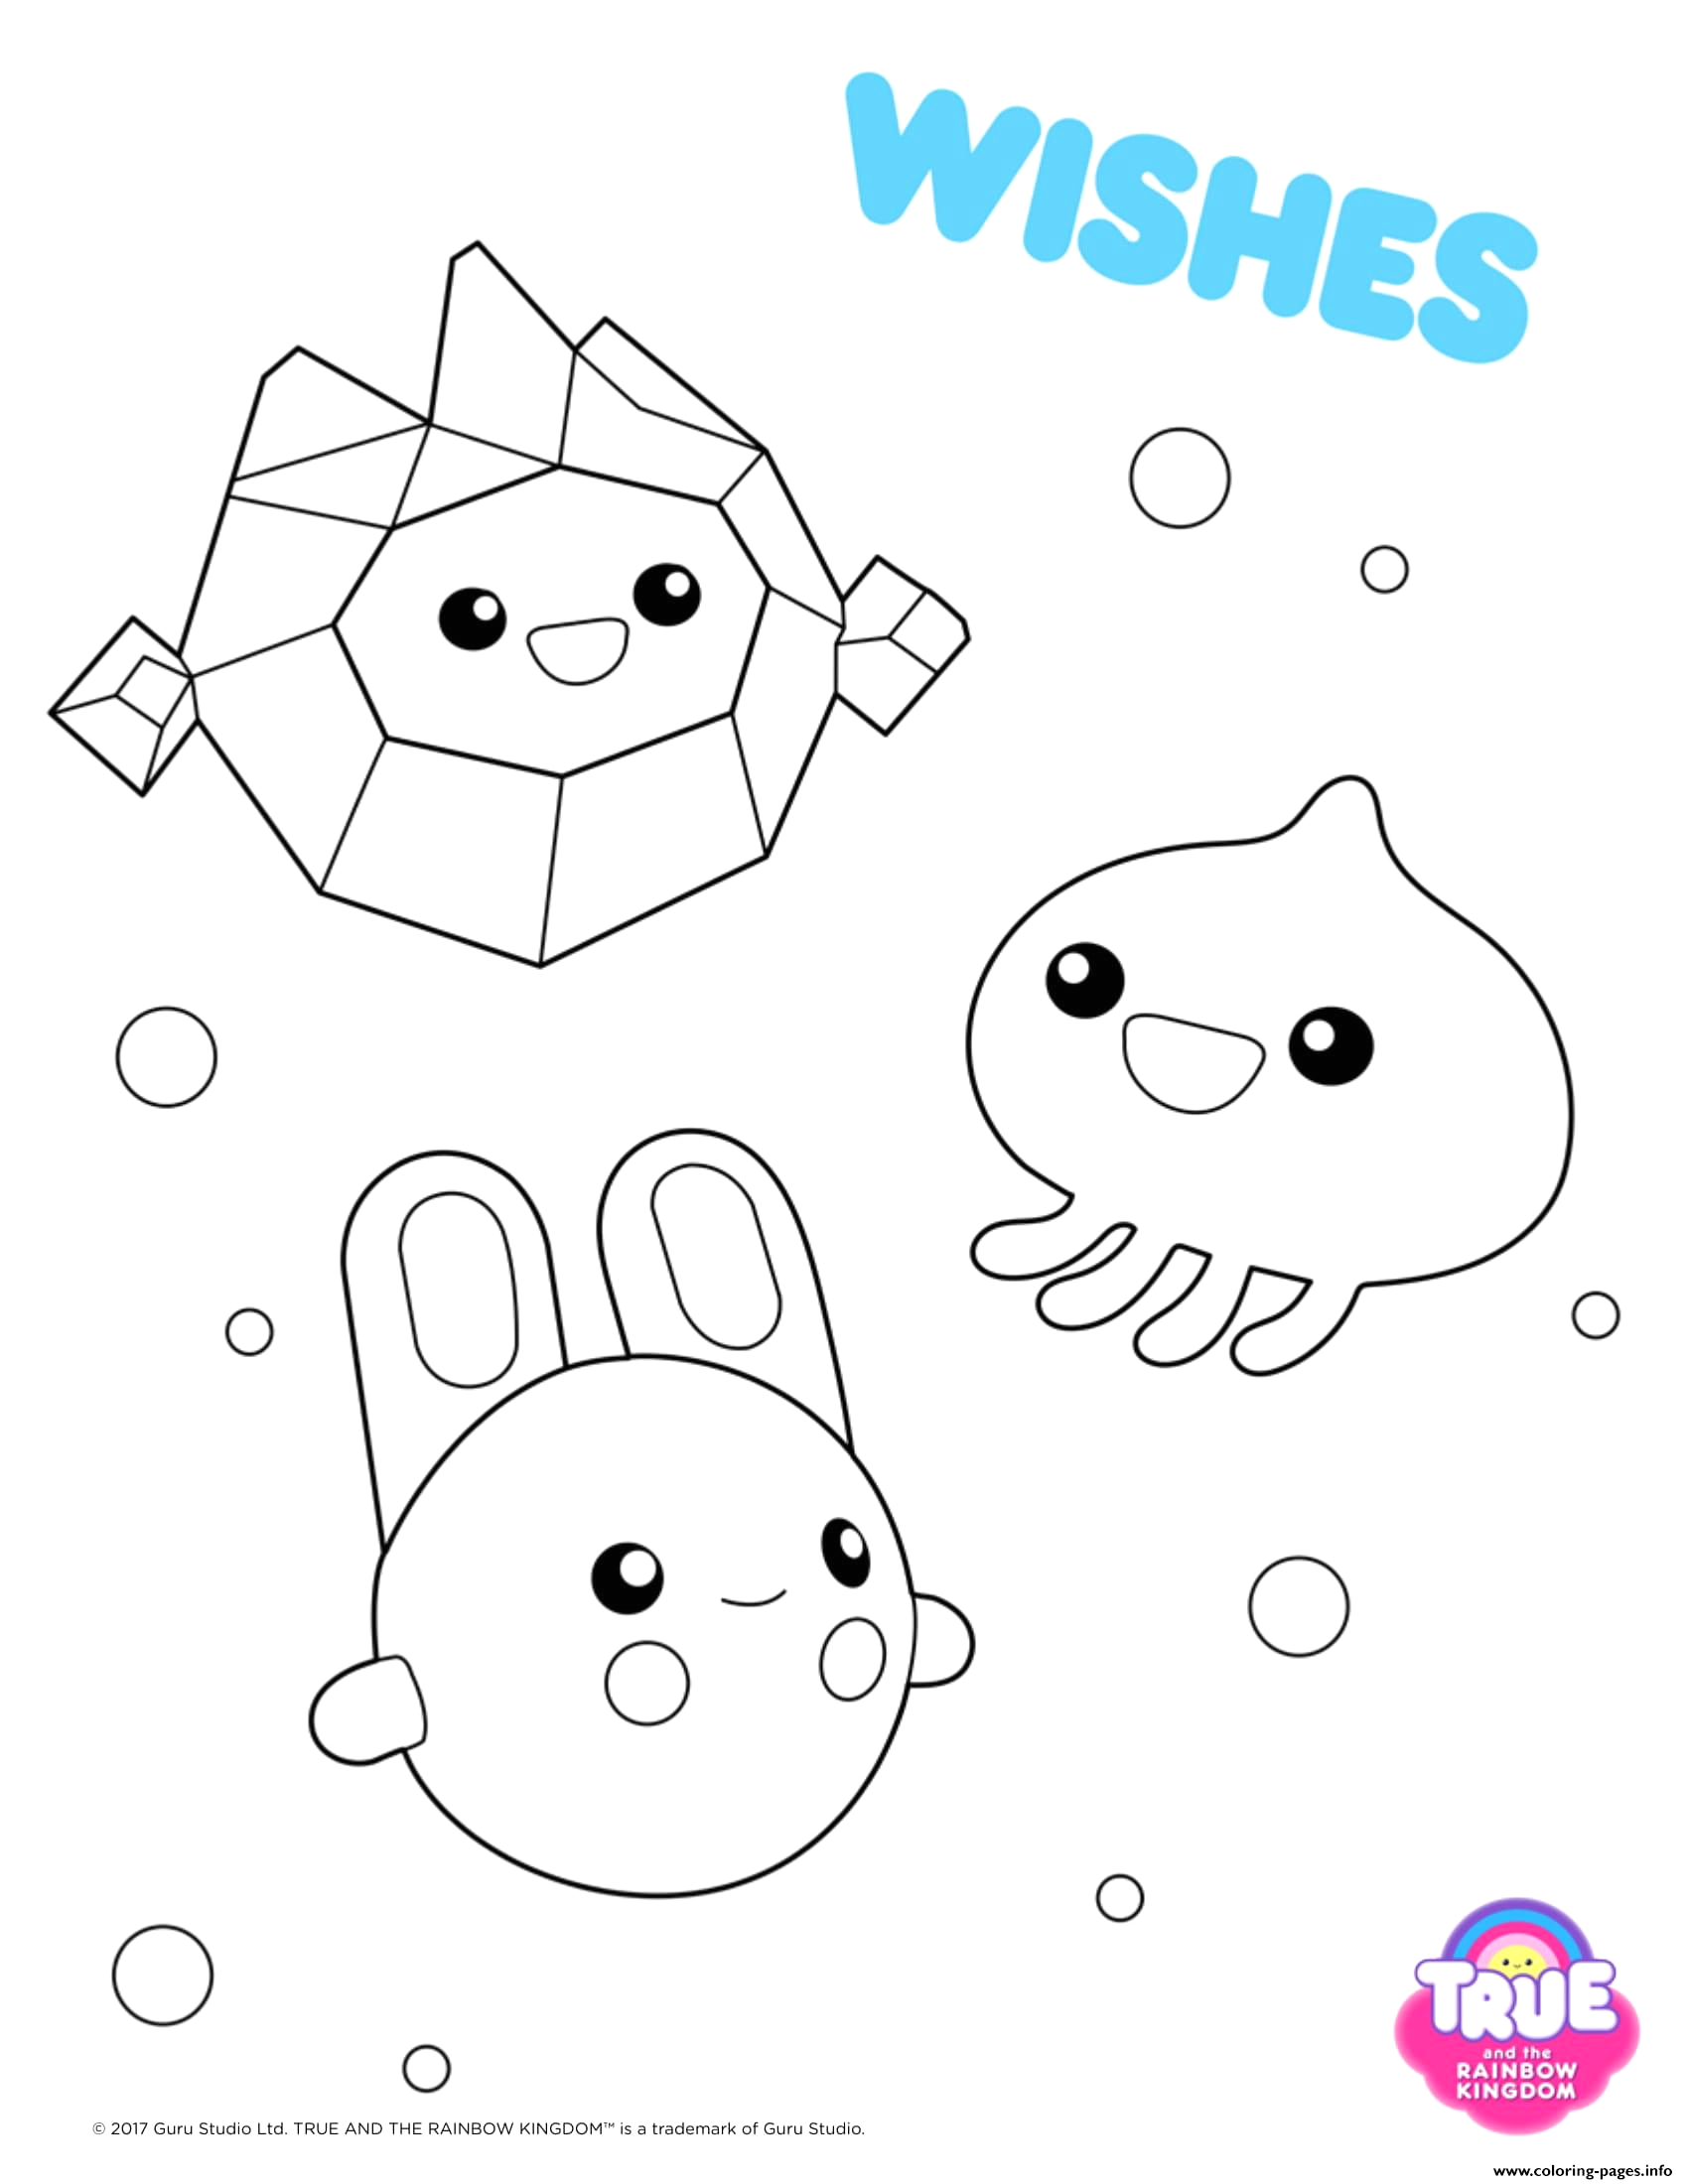 True and the Rainbow Kingdom Wishes Coloring Pages Wishes 1 True and the Rainbow Kingdom Coloring Pages Printable